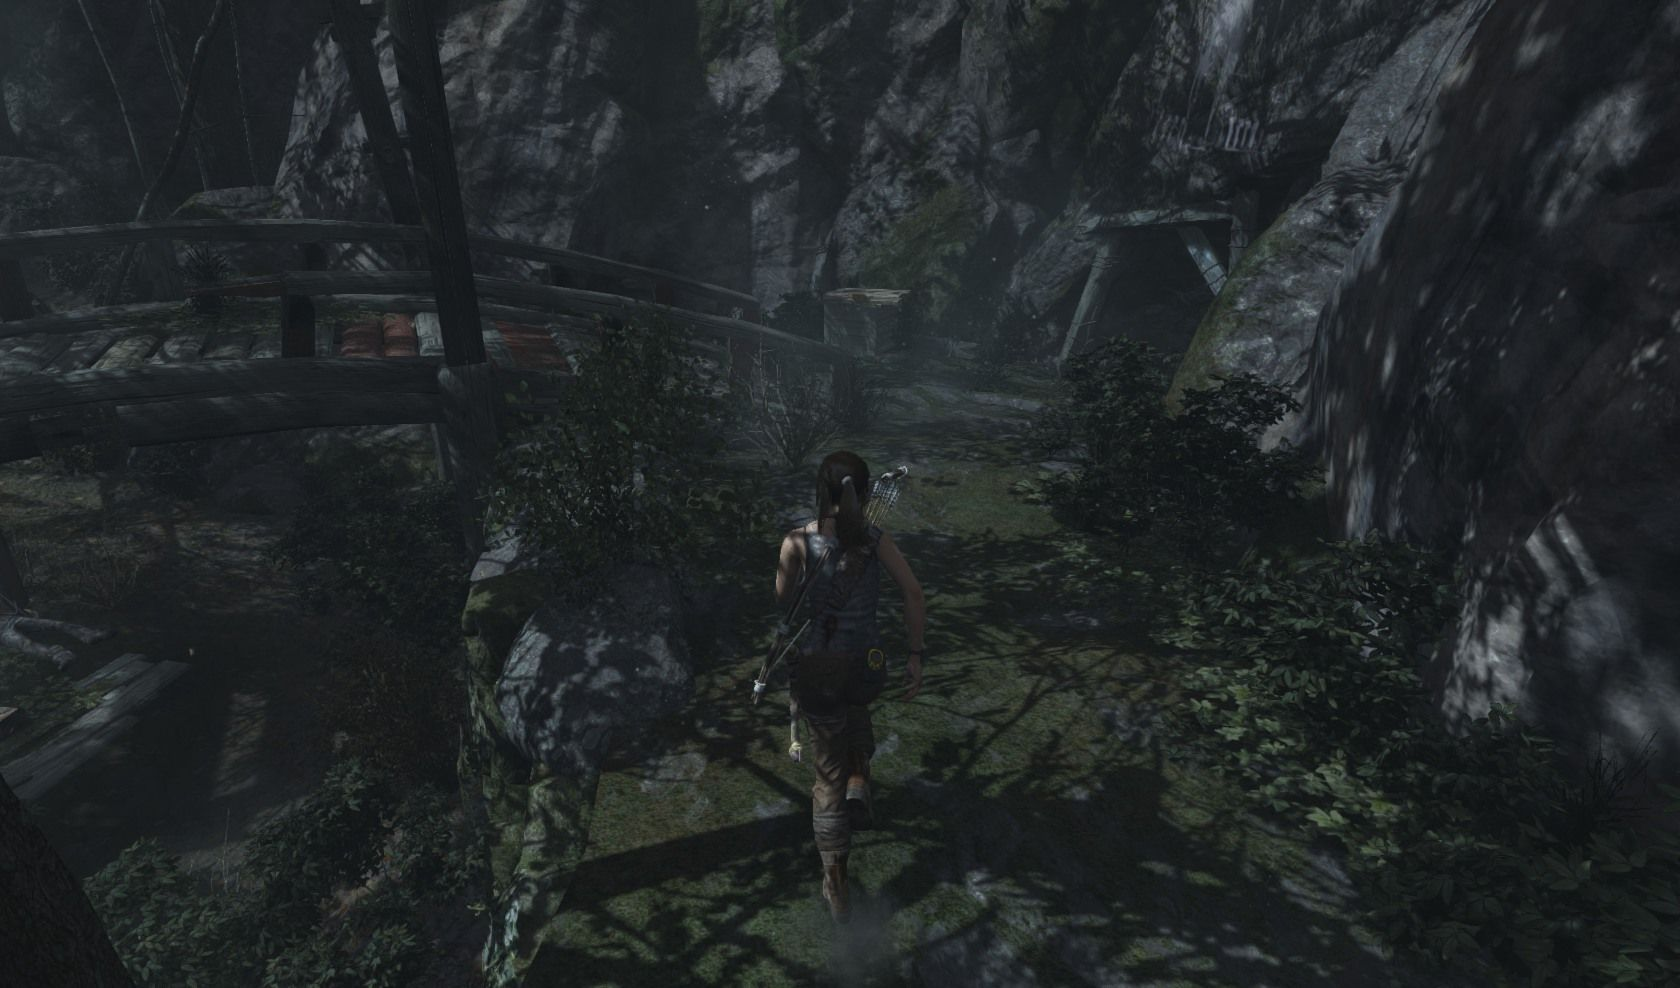 http://static.gosunoob.com/img/tomb_raider_map//Coastal_Forest_poi_Sam_Feelings_of_Unease_image_TombRaider_2013_03_05_16_50_59_654.jpg